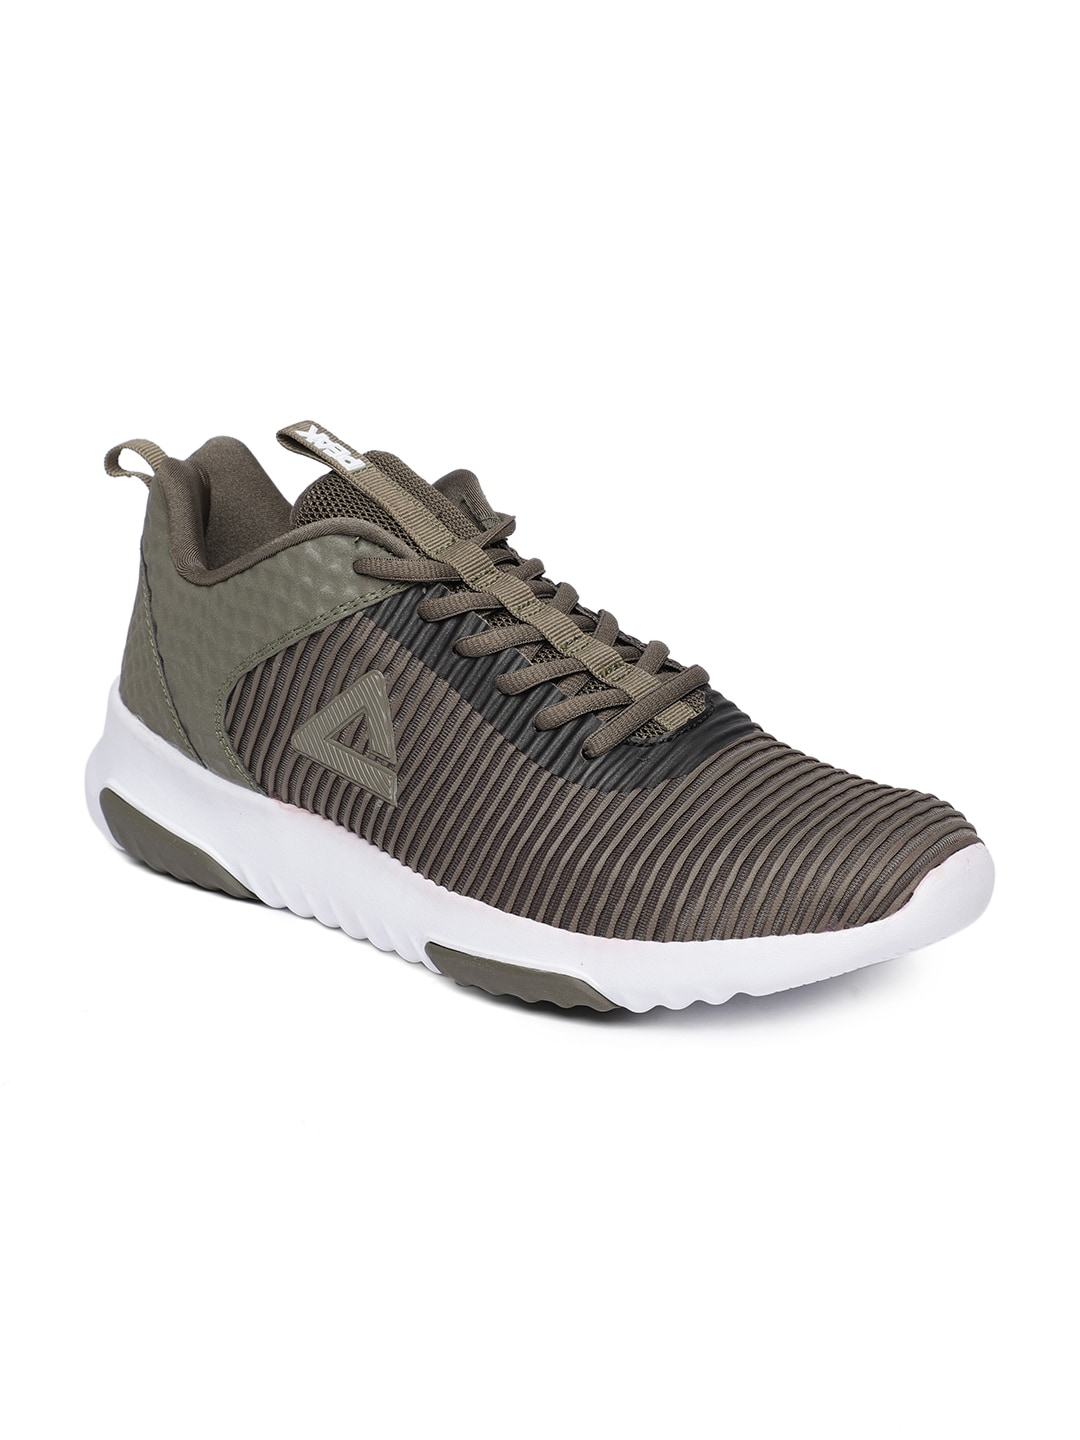 Sports Shoes for Men - Buy Men Sports Shoes Online in India - Myntra 4a6cebdda